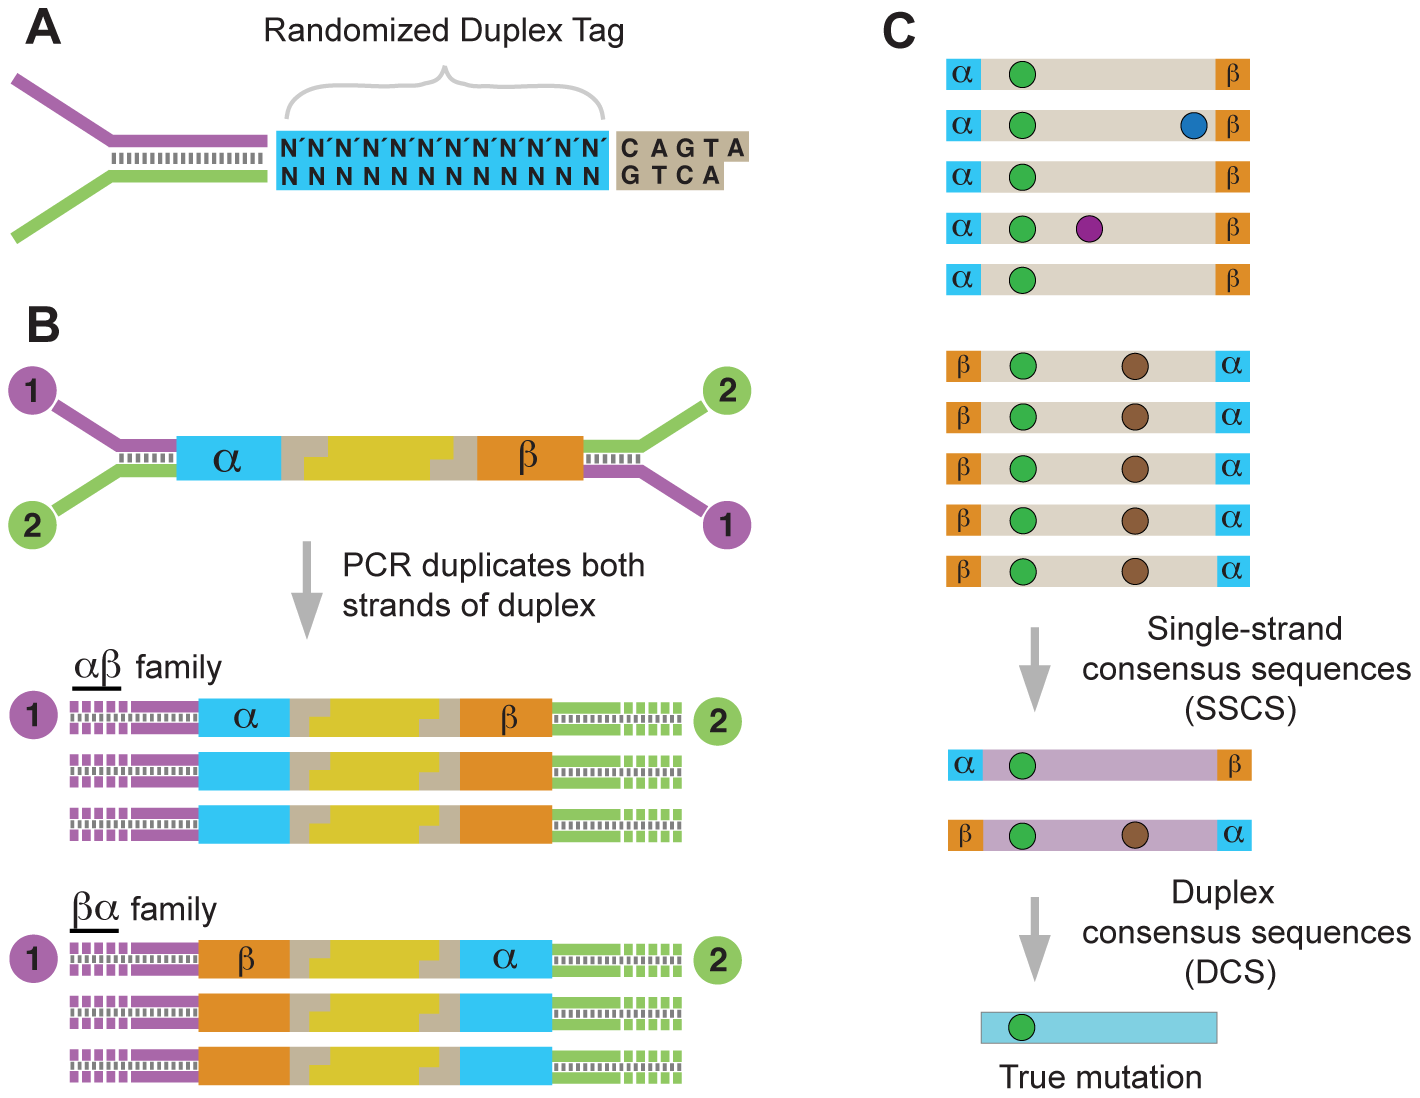 Overview of the Duplex Sequencing methodology.